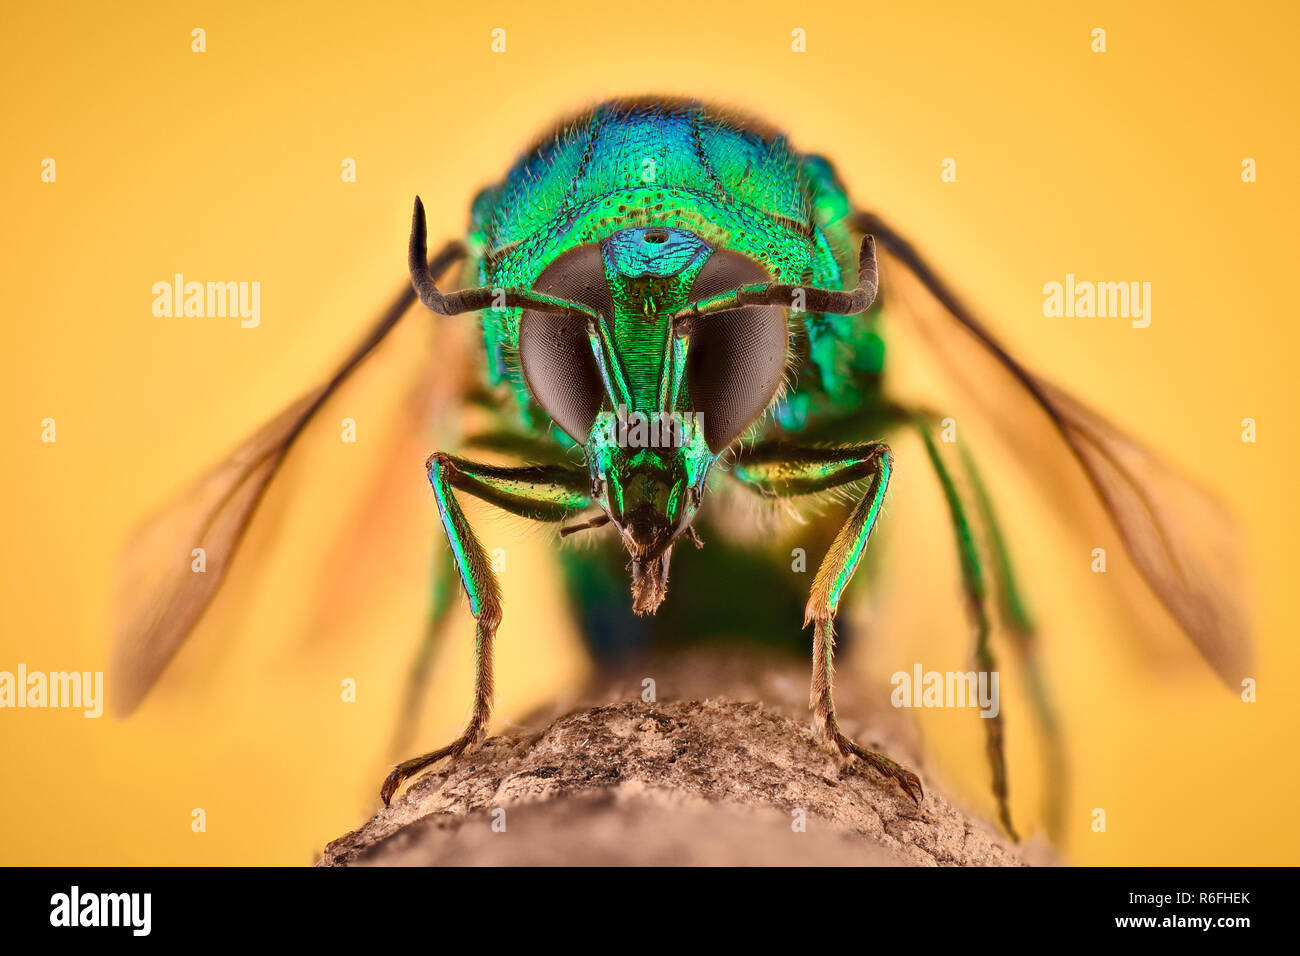 Extreme magnification - Cuckoo wasp - Stock Image